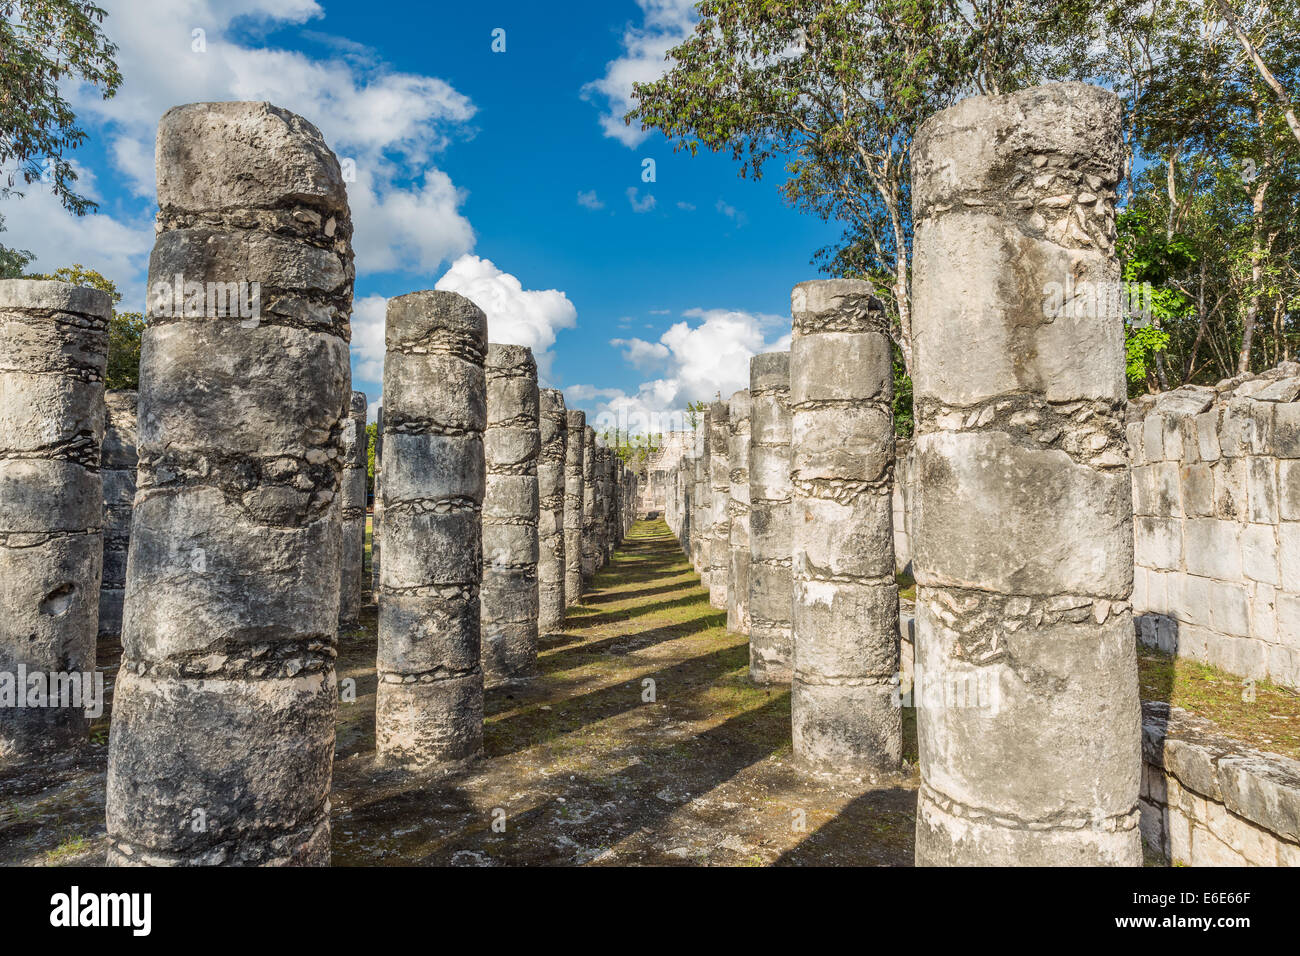 Temple of a Thousand Warriors, Chichen Itza, Mexico - Stock Image